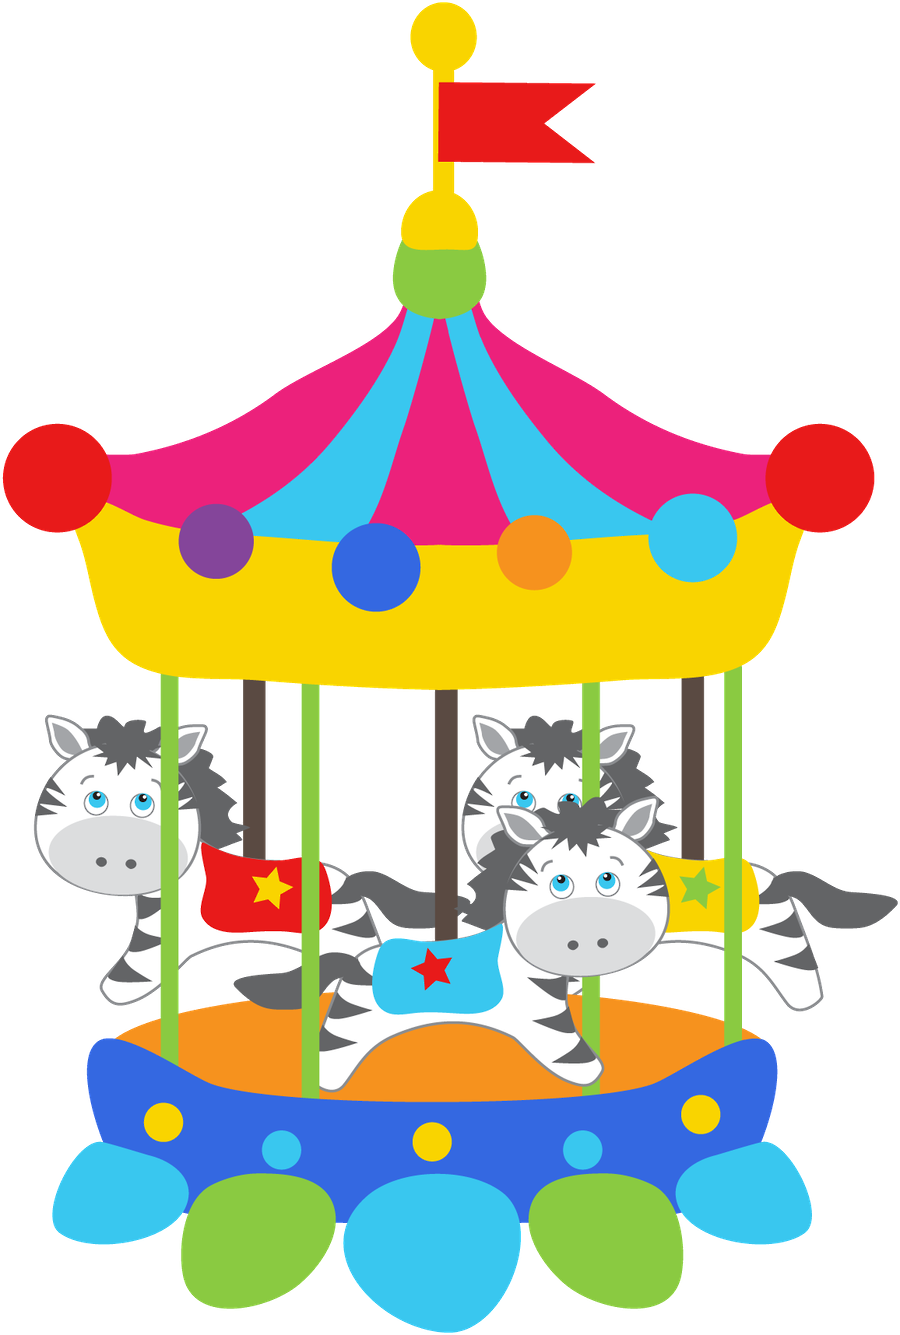 png library stock Circo animals circus png. Arcade clipart carnival tent